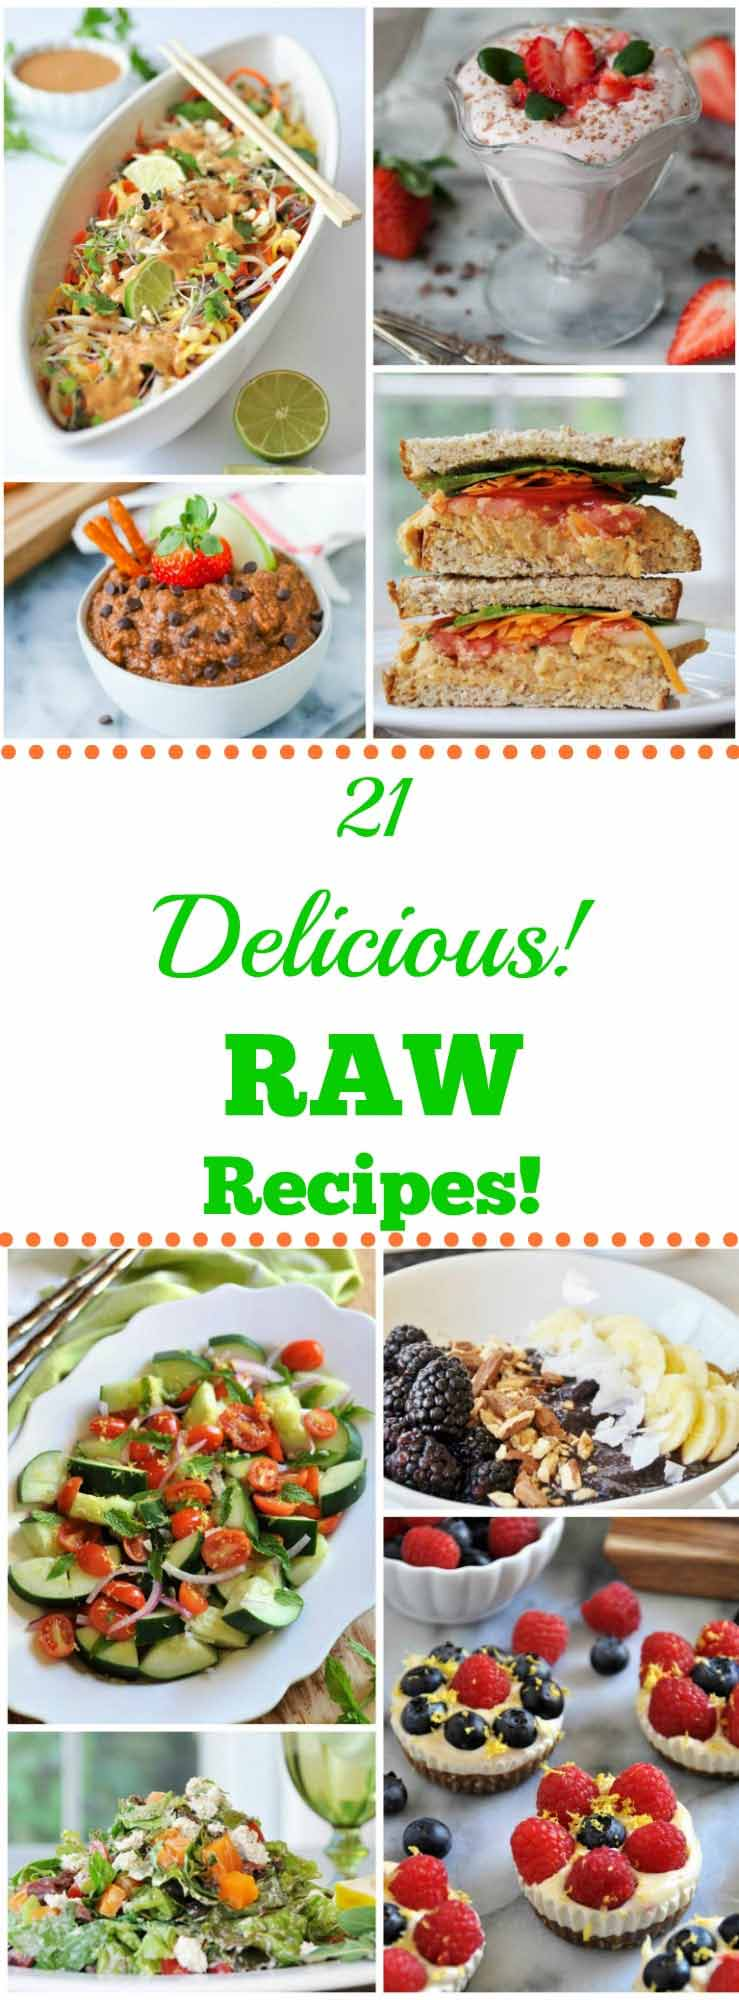 21 colorful and delicious whole food plant-based raw recipes that will make summer meals easy. #raw #vegan